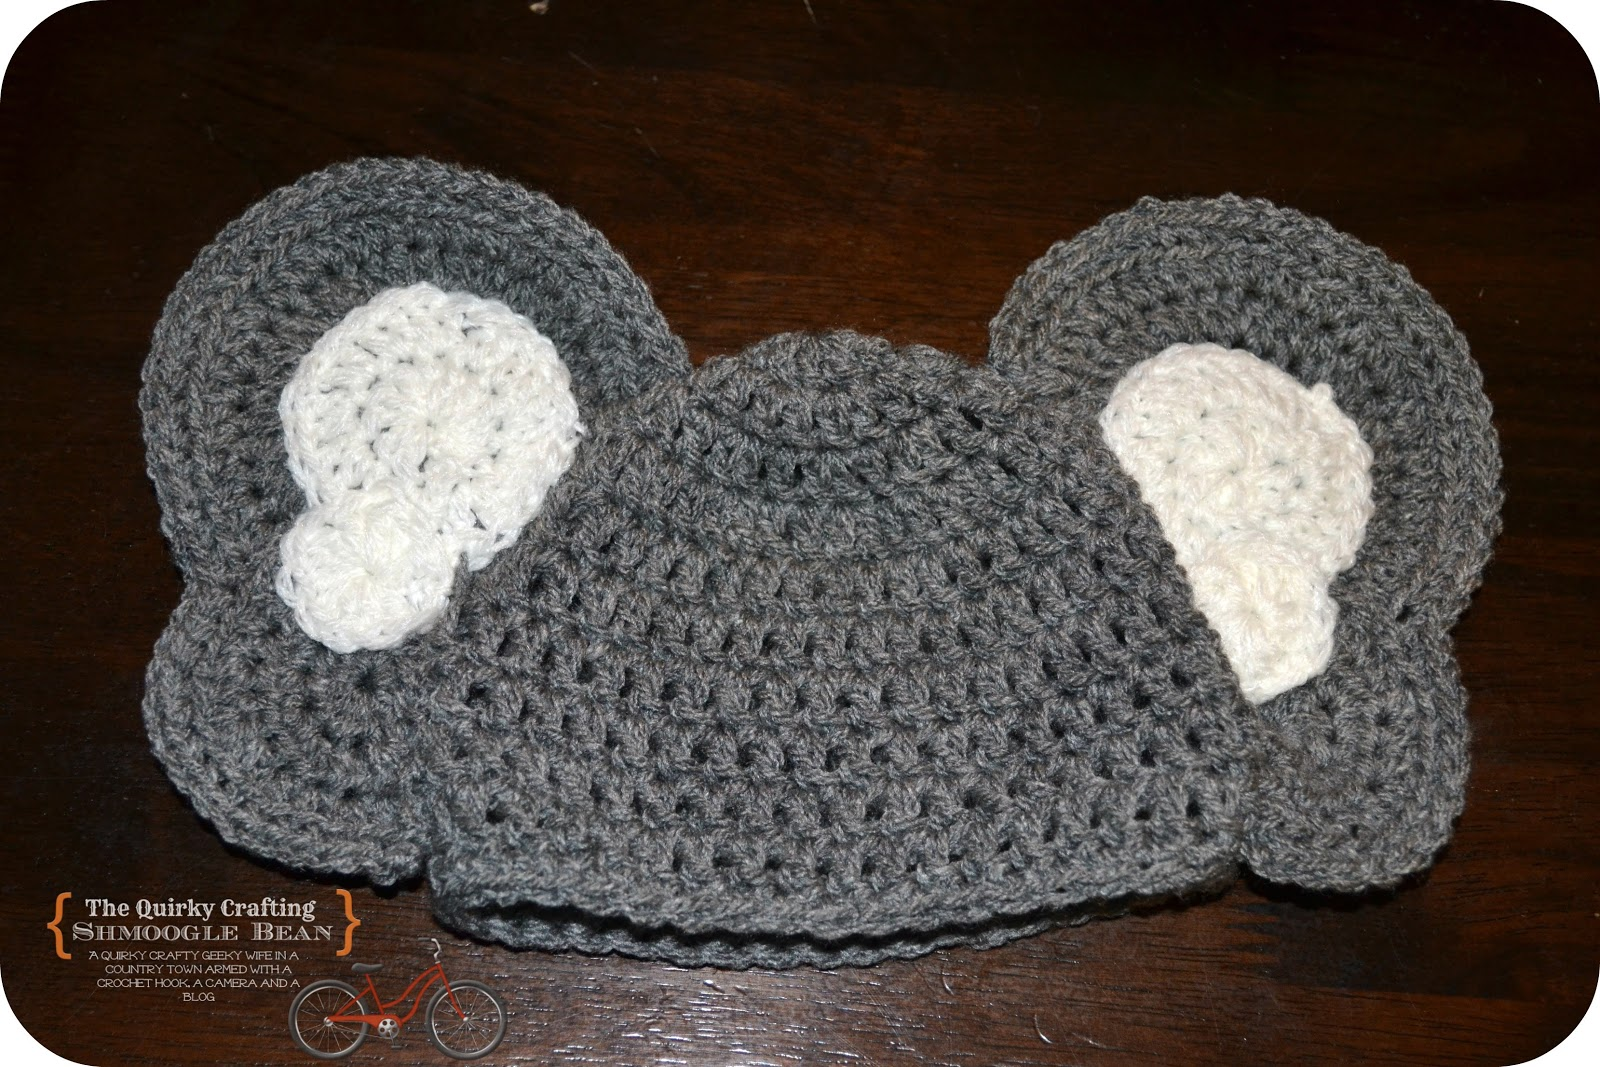 The Quirky Crafting Shmoogle Bean: Newborn Baby Heffalump Crochet ...